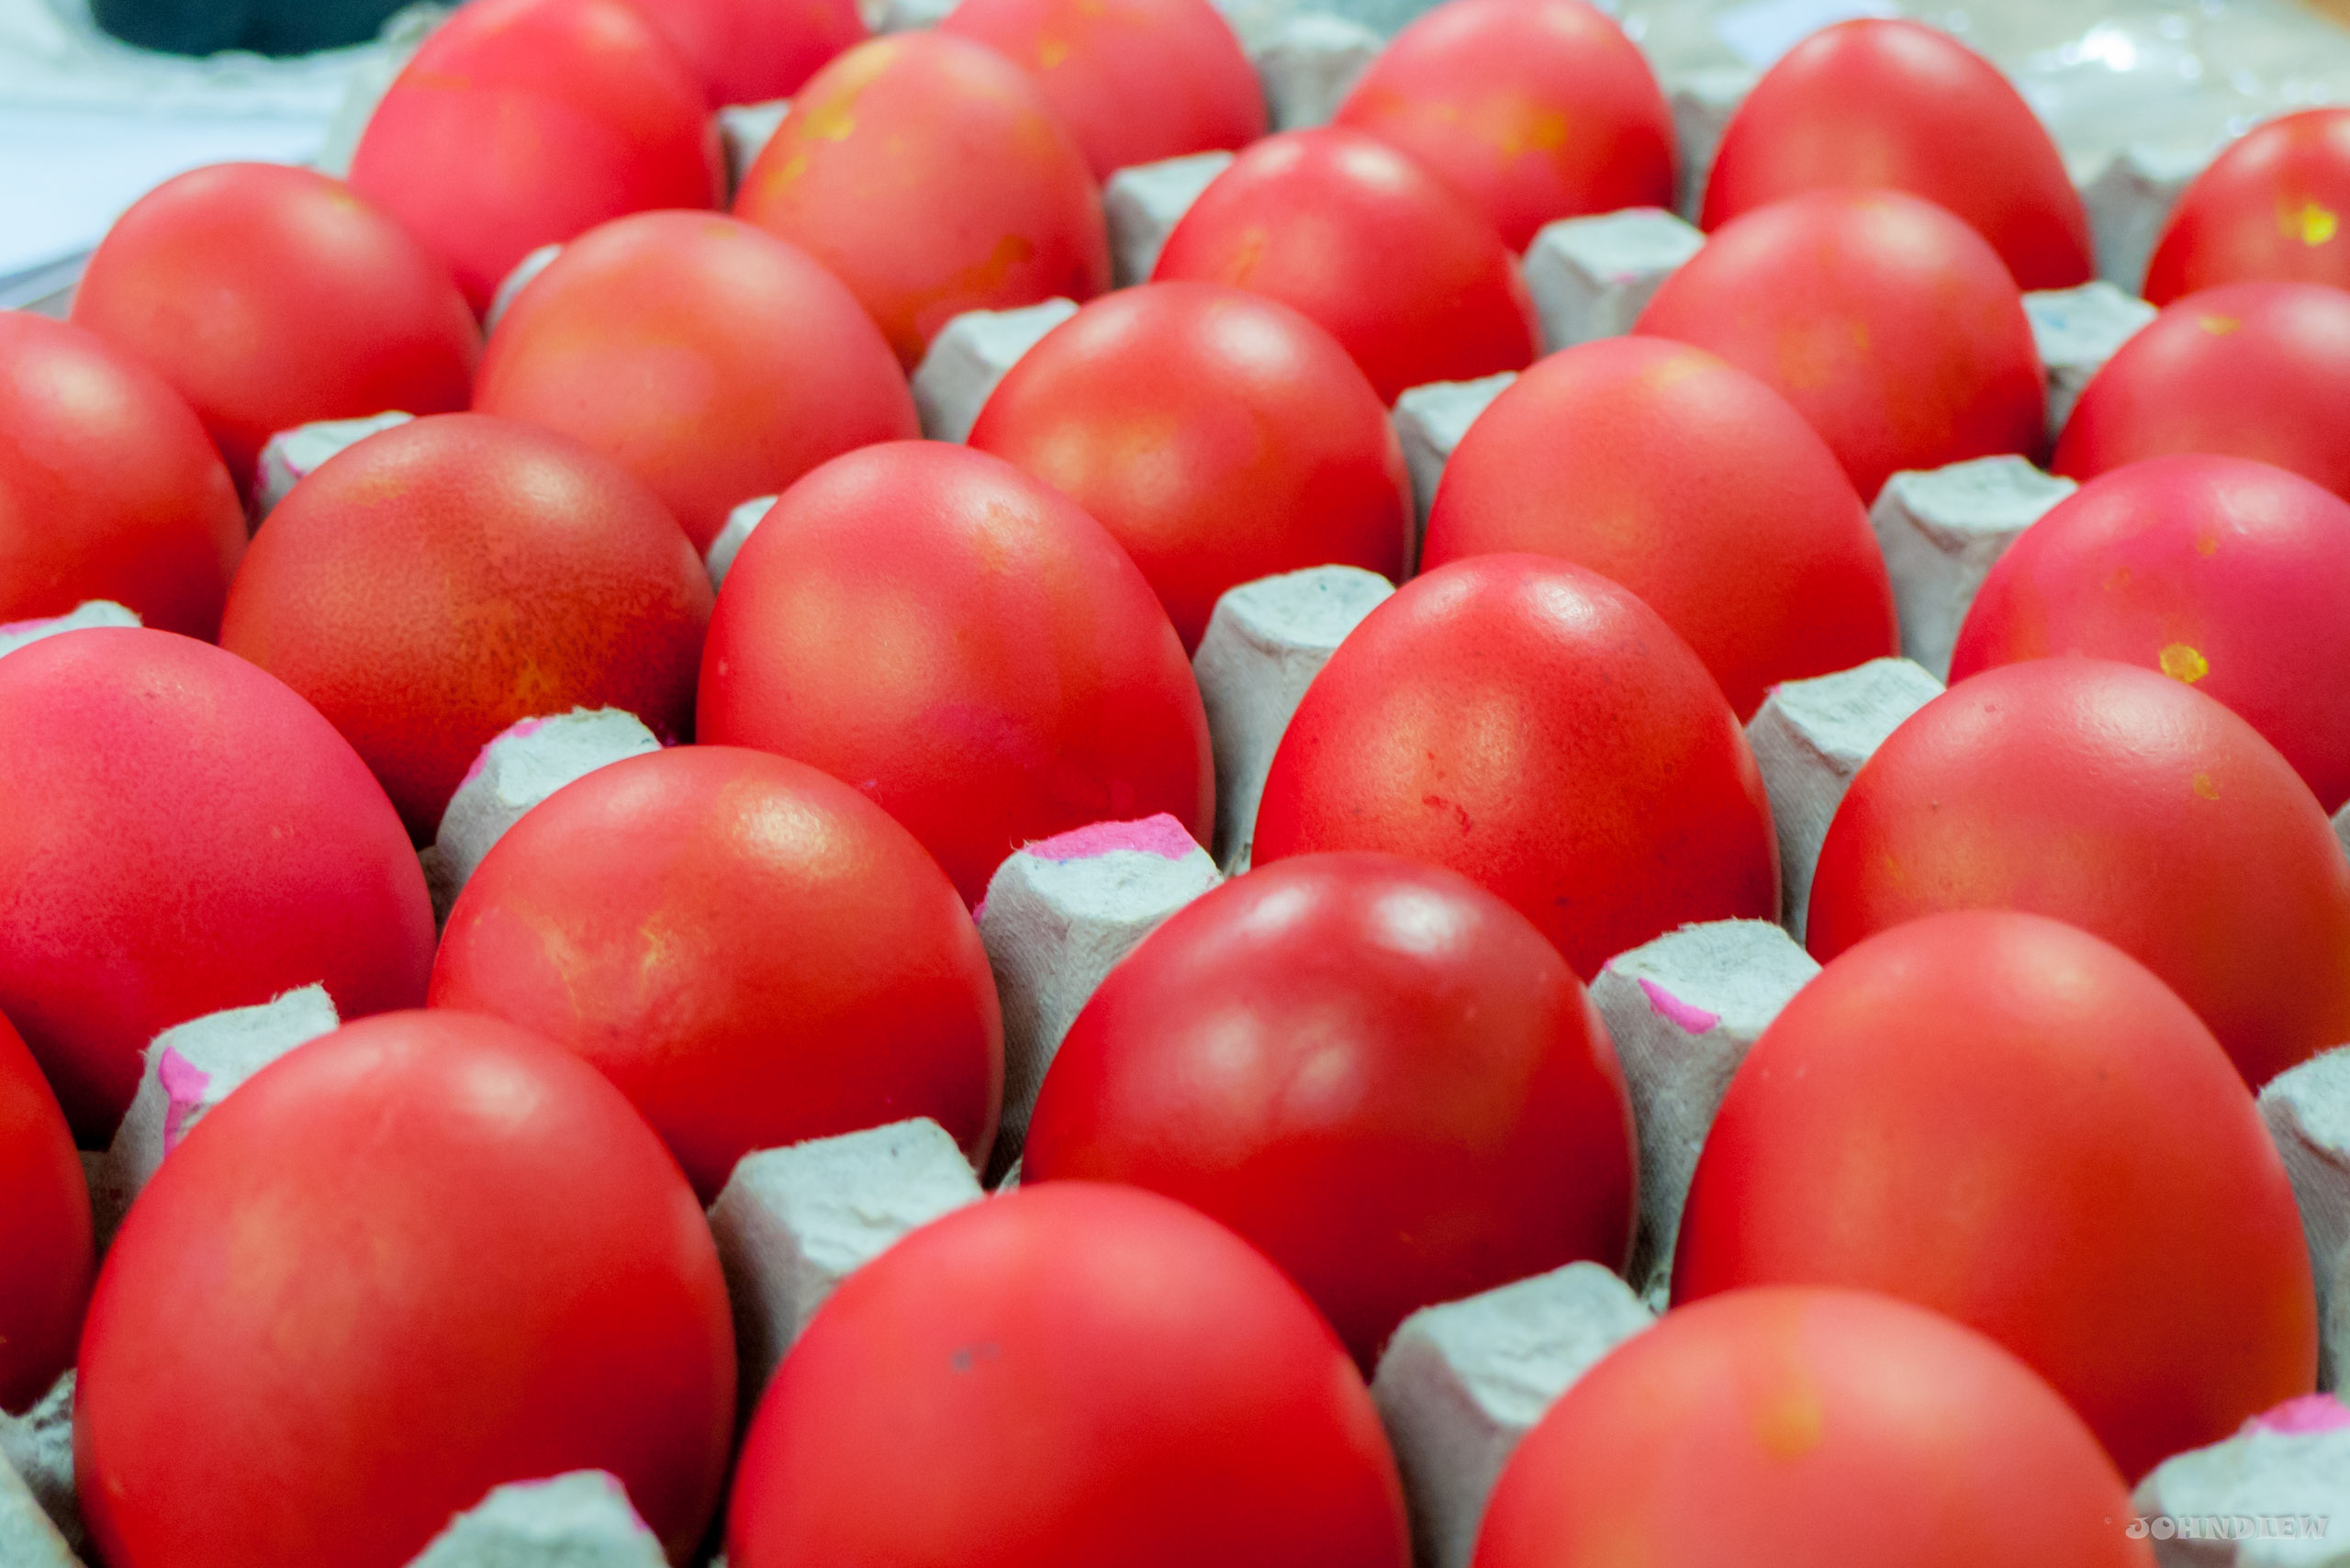 Chinese Red Eggs